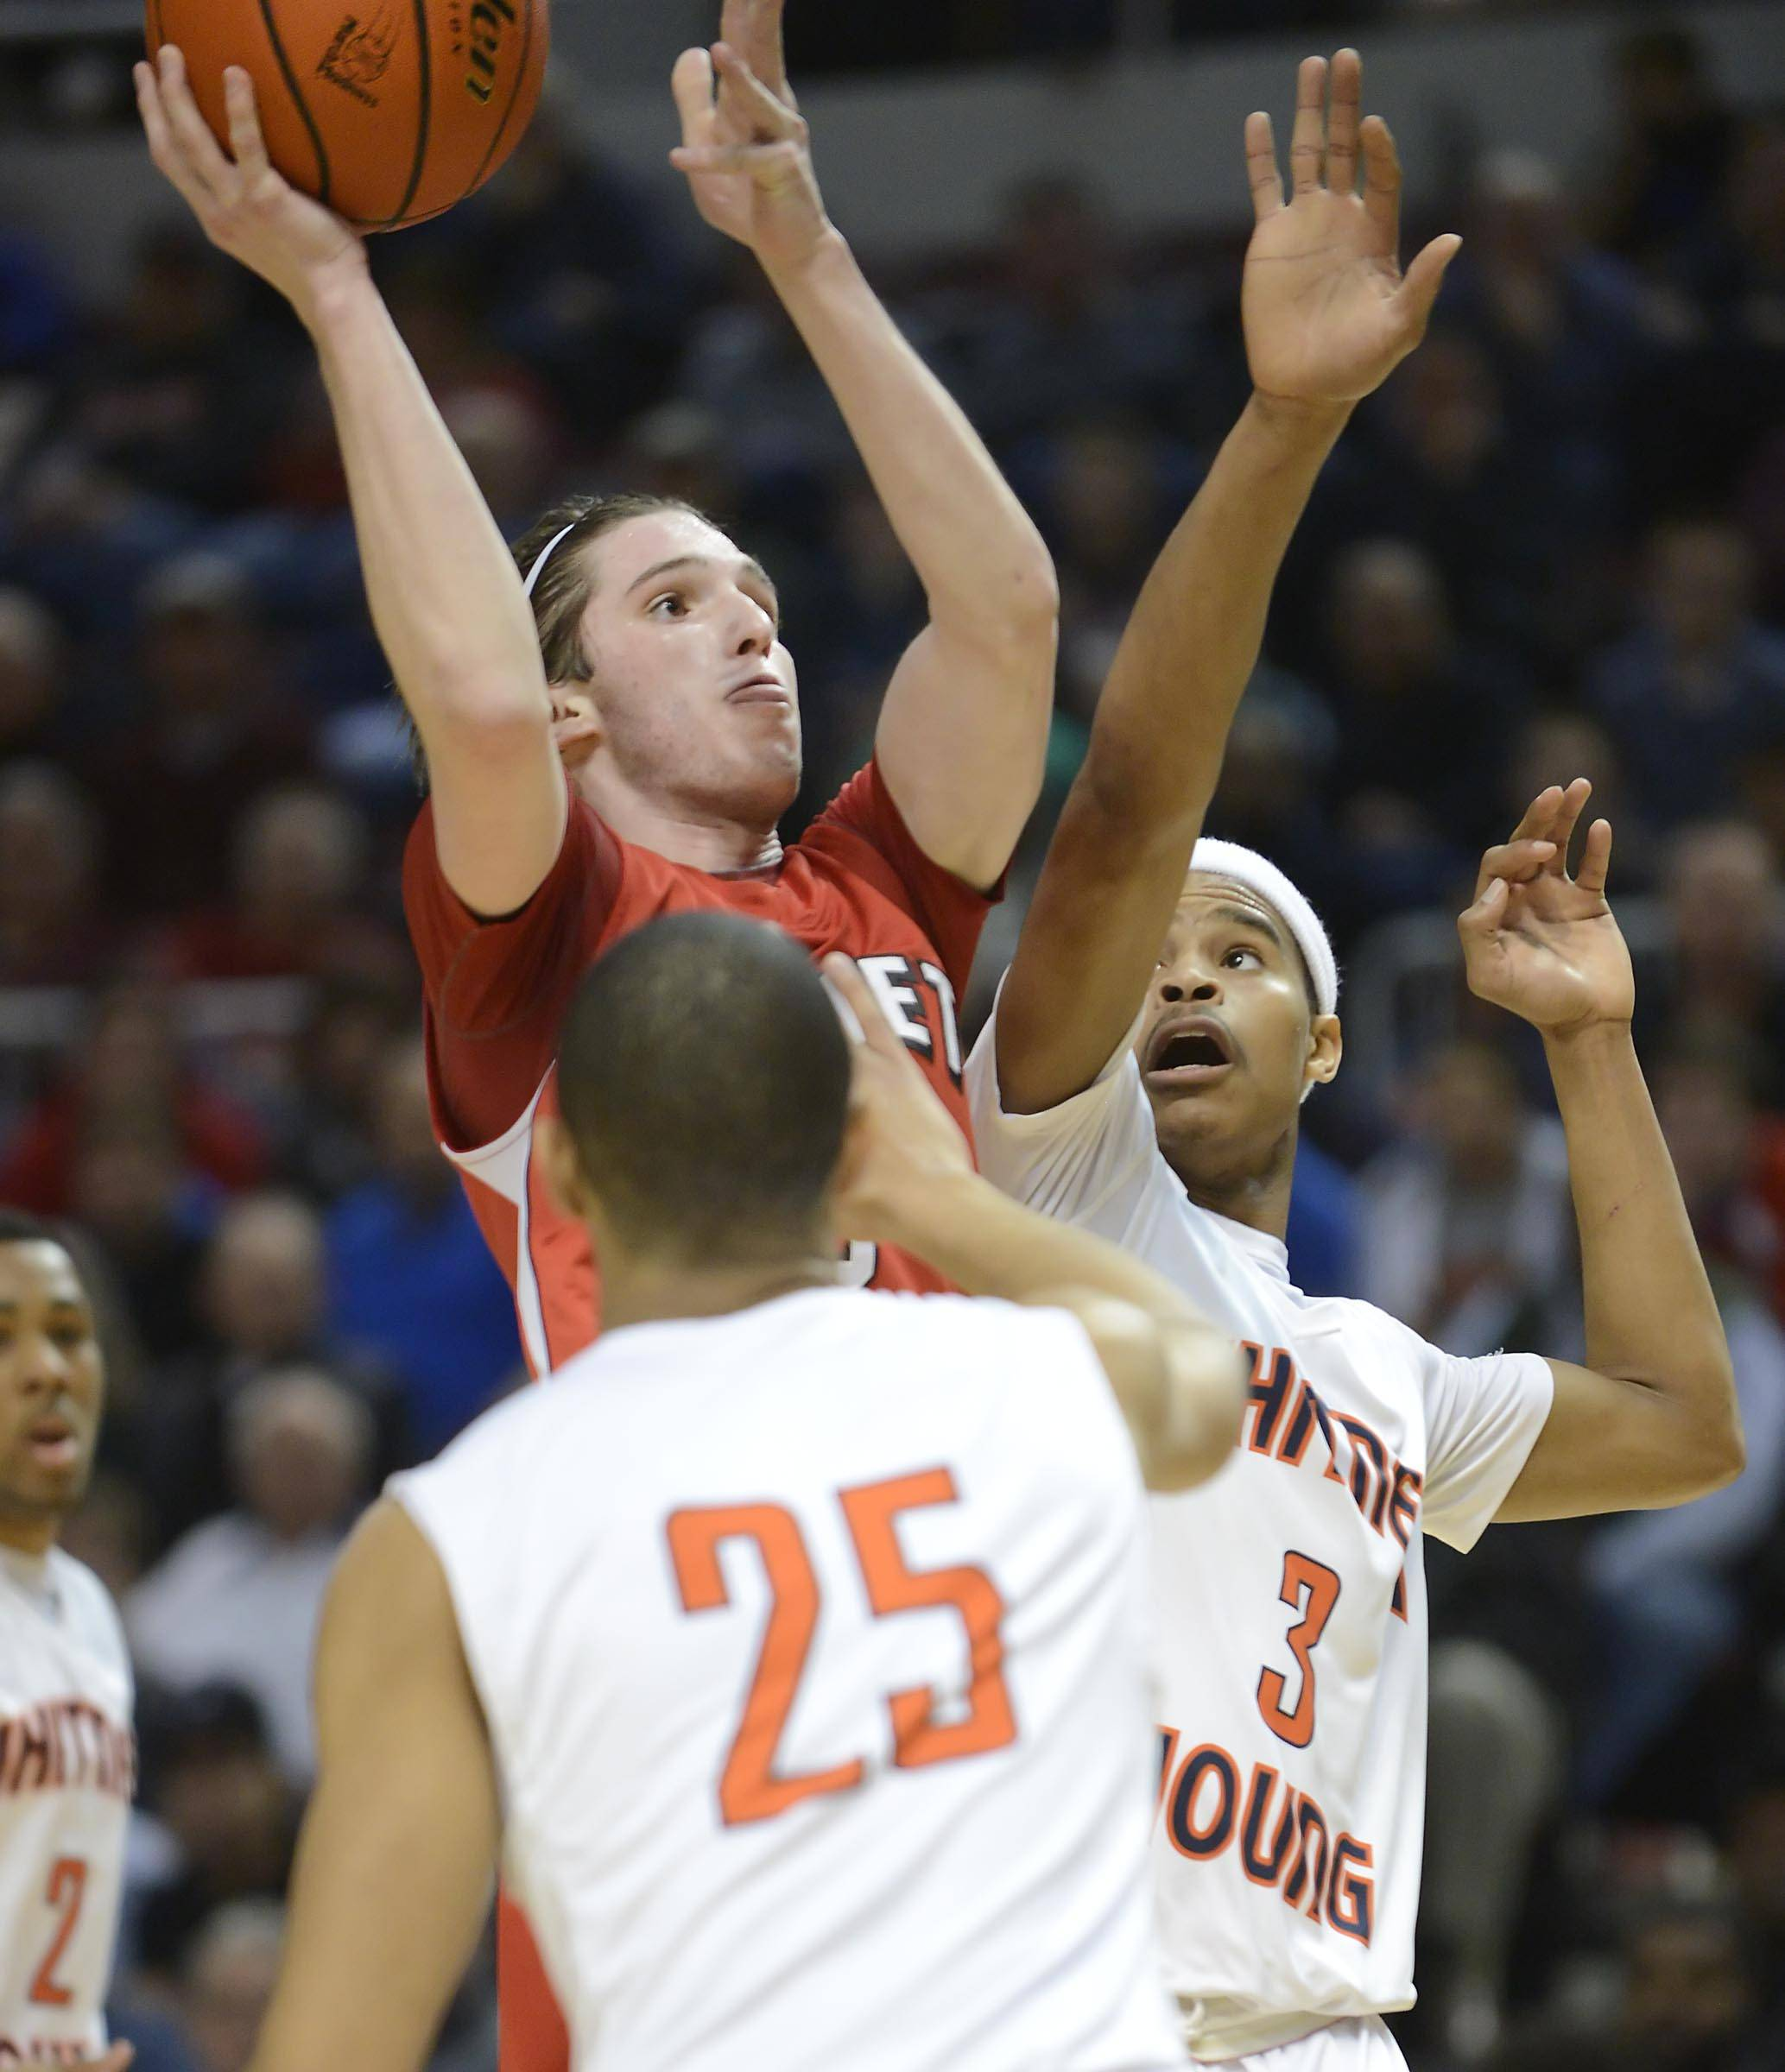 Benet Academy's Collin Pellettieri shoots over Whitney Young's Miles Reynolds and Christian Everett in the Class 4A state championship game at Carver Arena in Peoria Saturday.